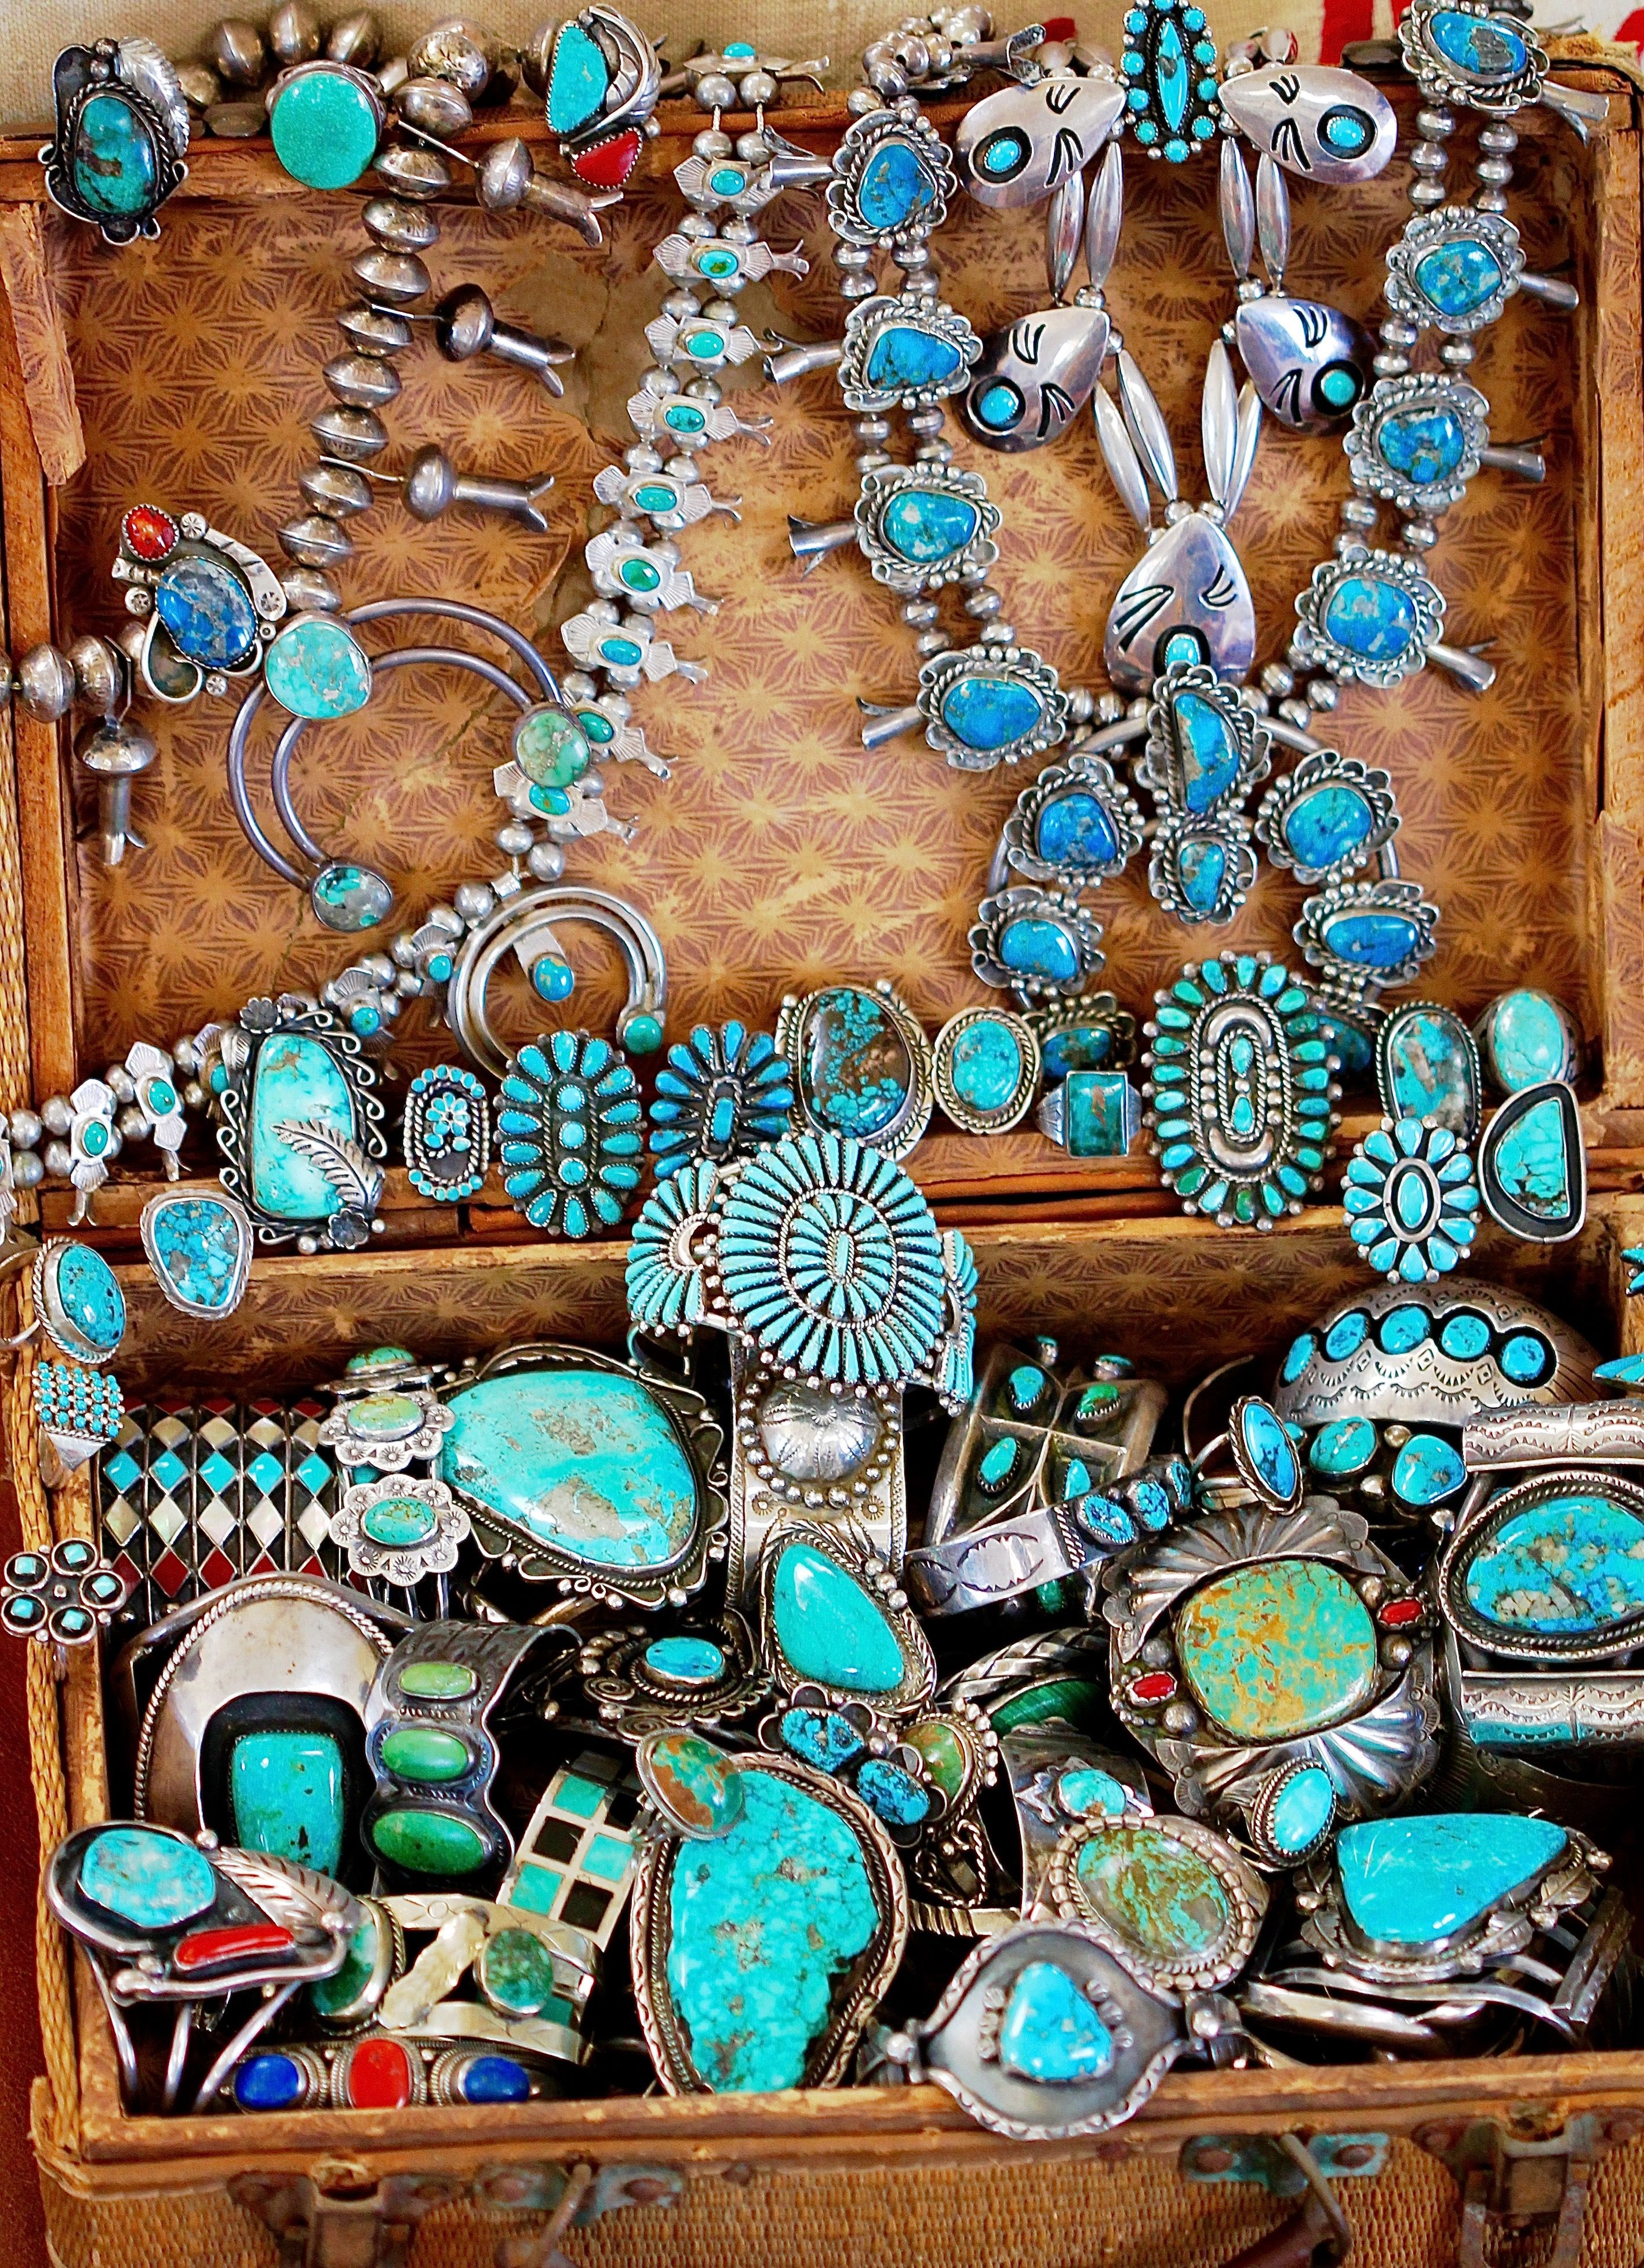 1db7319d73d0d Turquoise Treasure Chest ~ Yourgreatfinds.net ~ Etsy and One Kings Lane ~  Festival Style Vintage